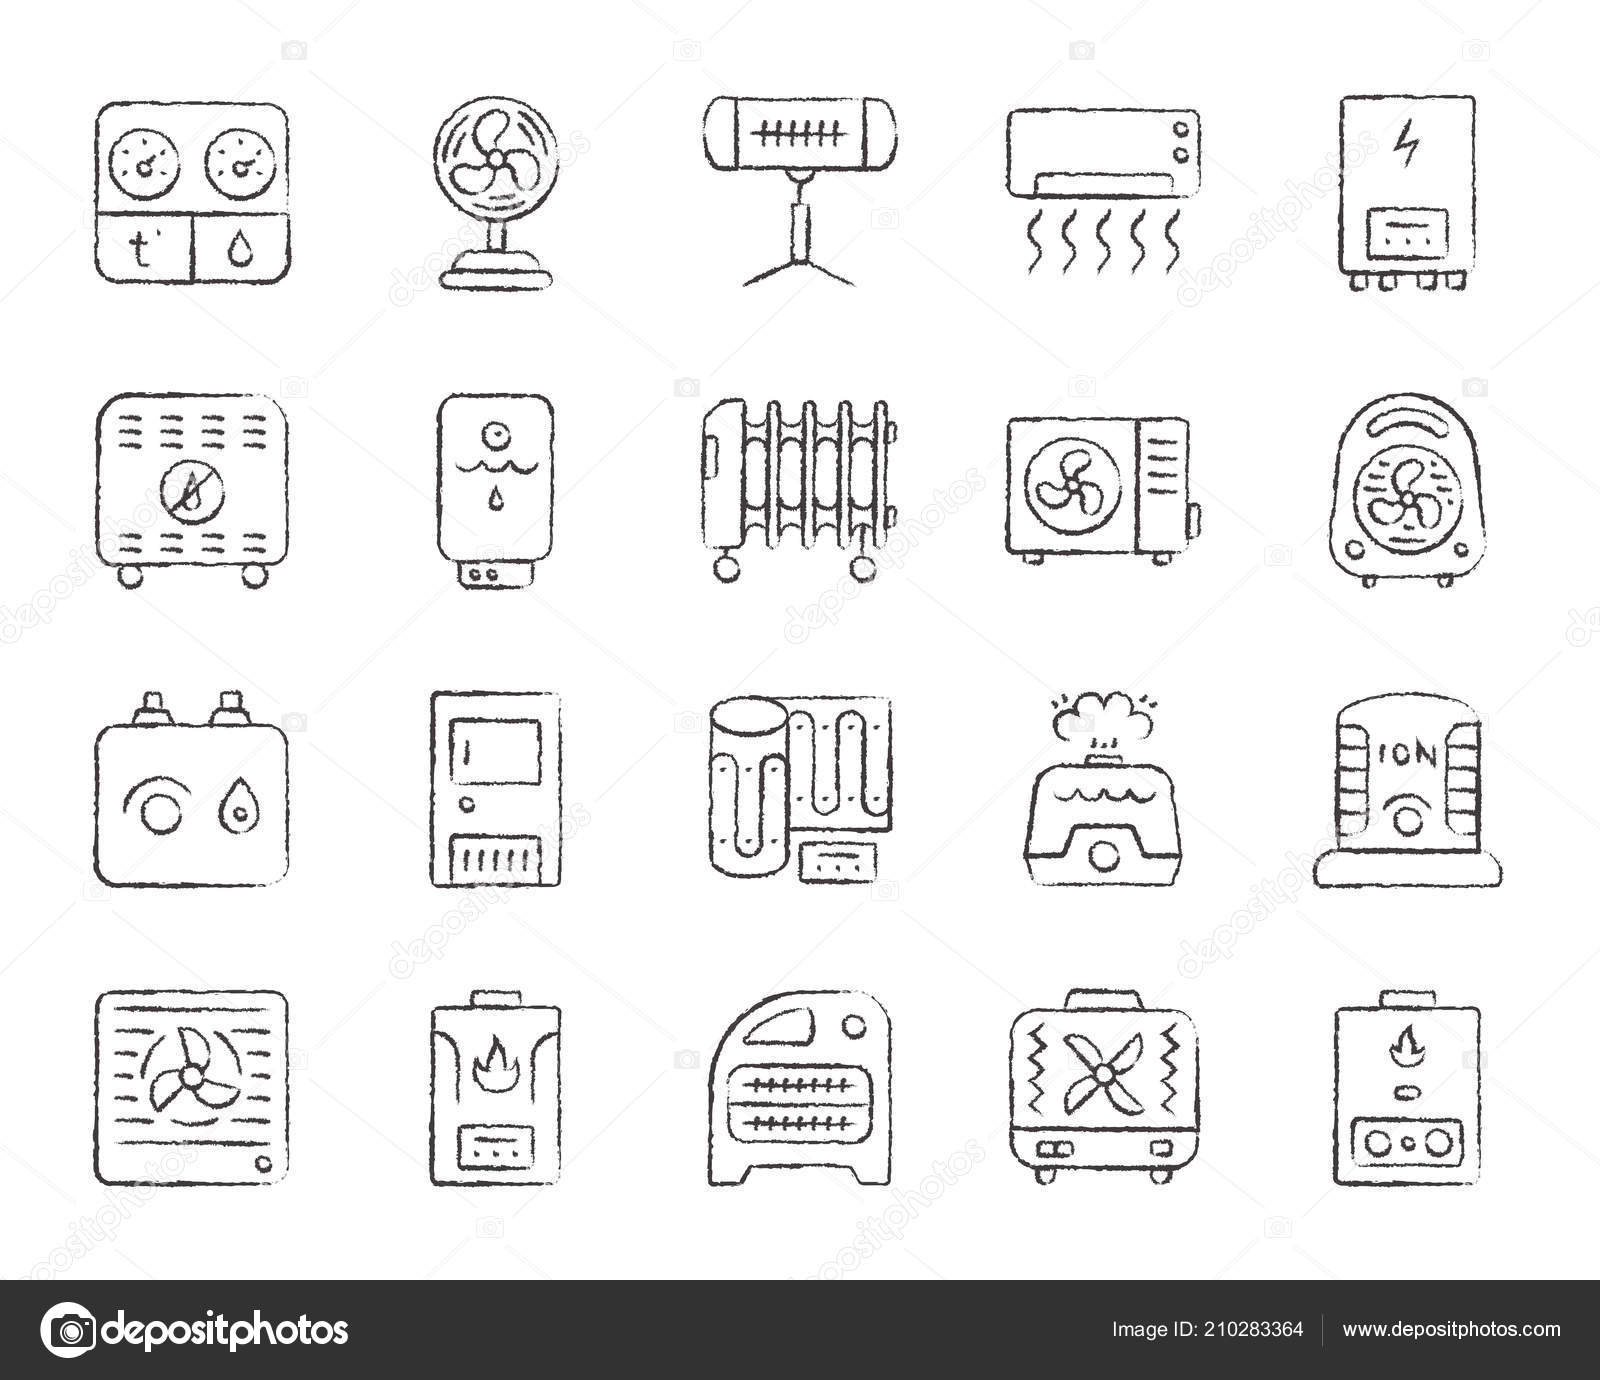 hight resolution of hvac charcoal draw line icons vector set stock vector